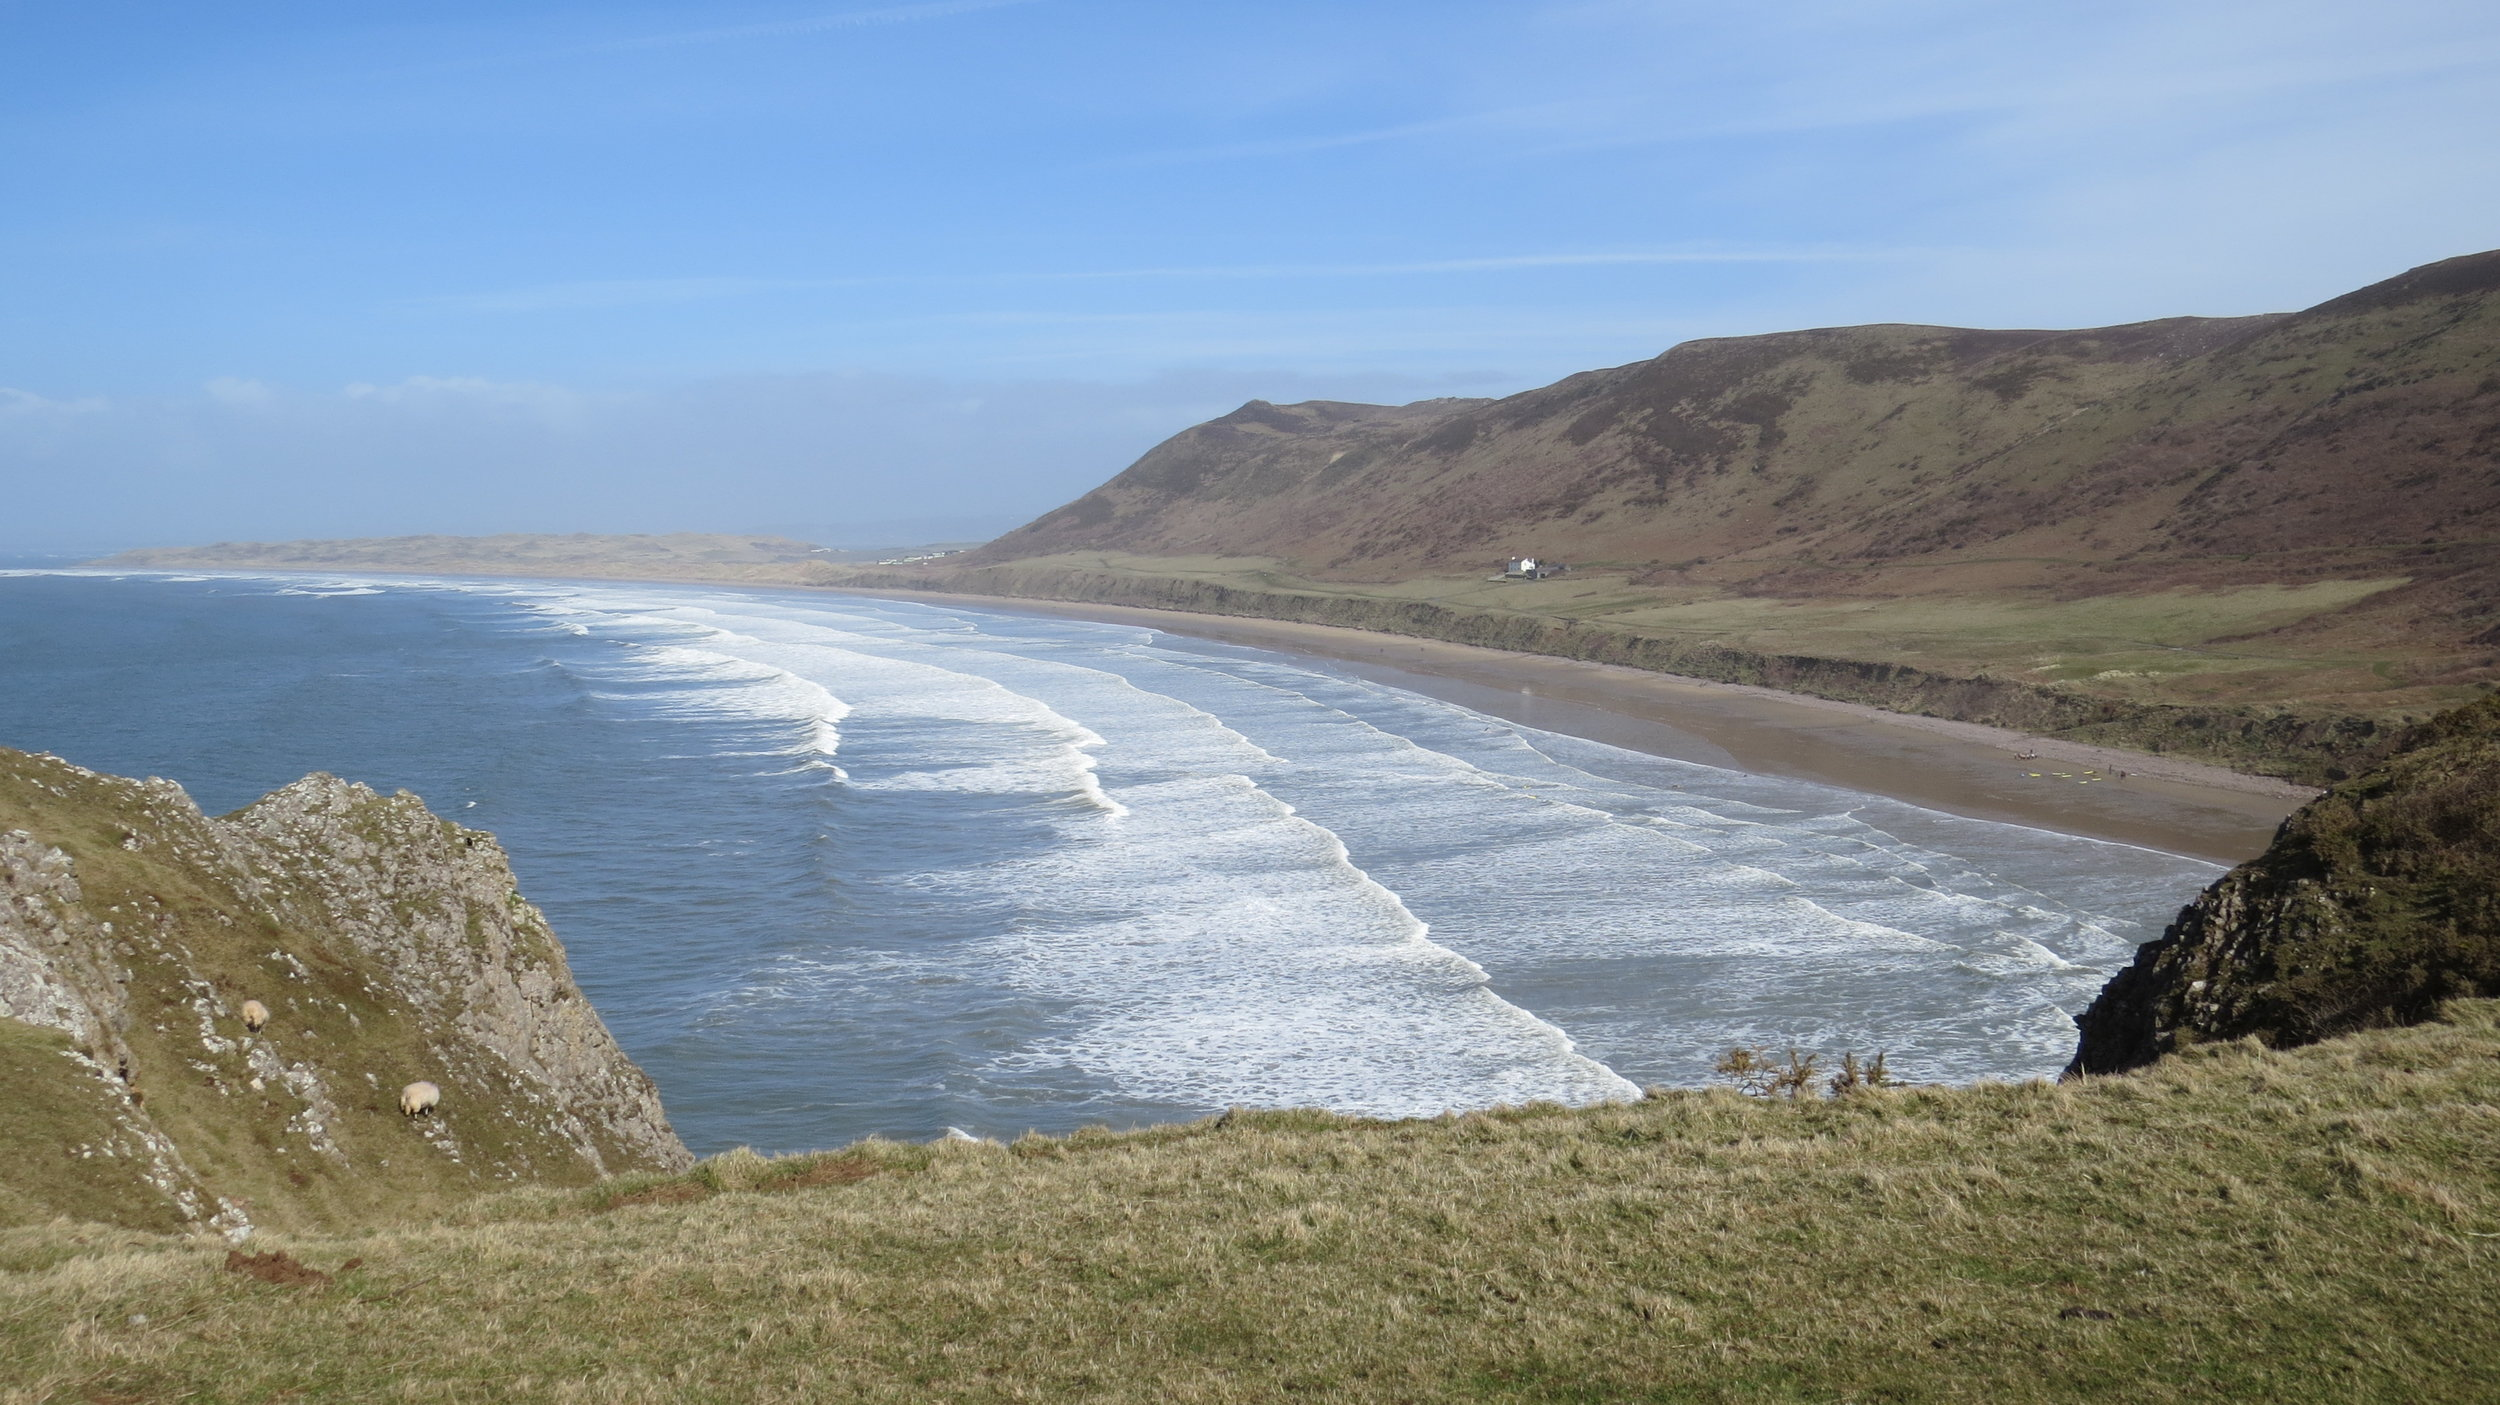 Rhossili Bay from Above